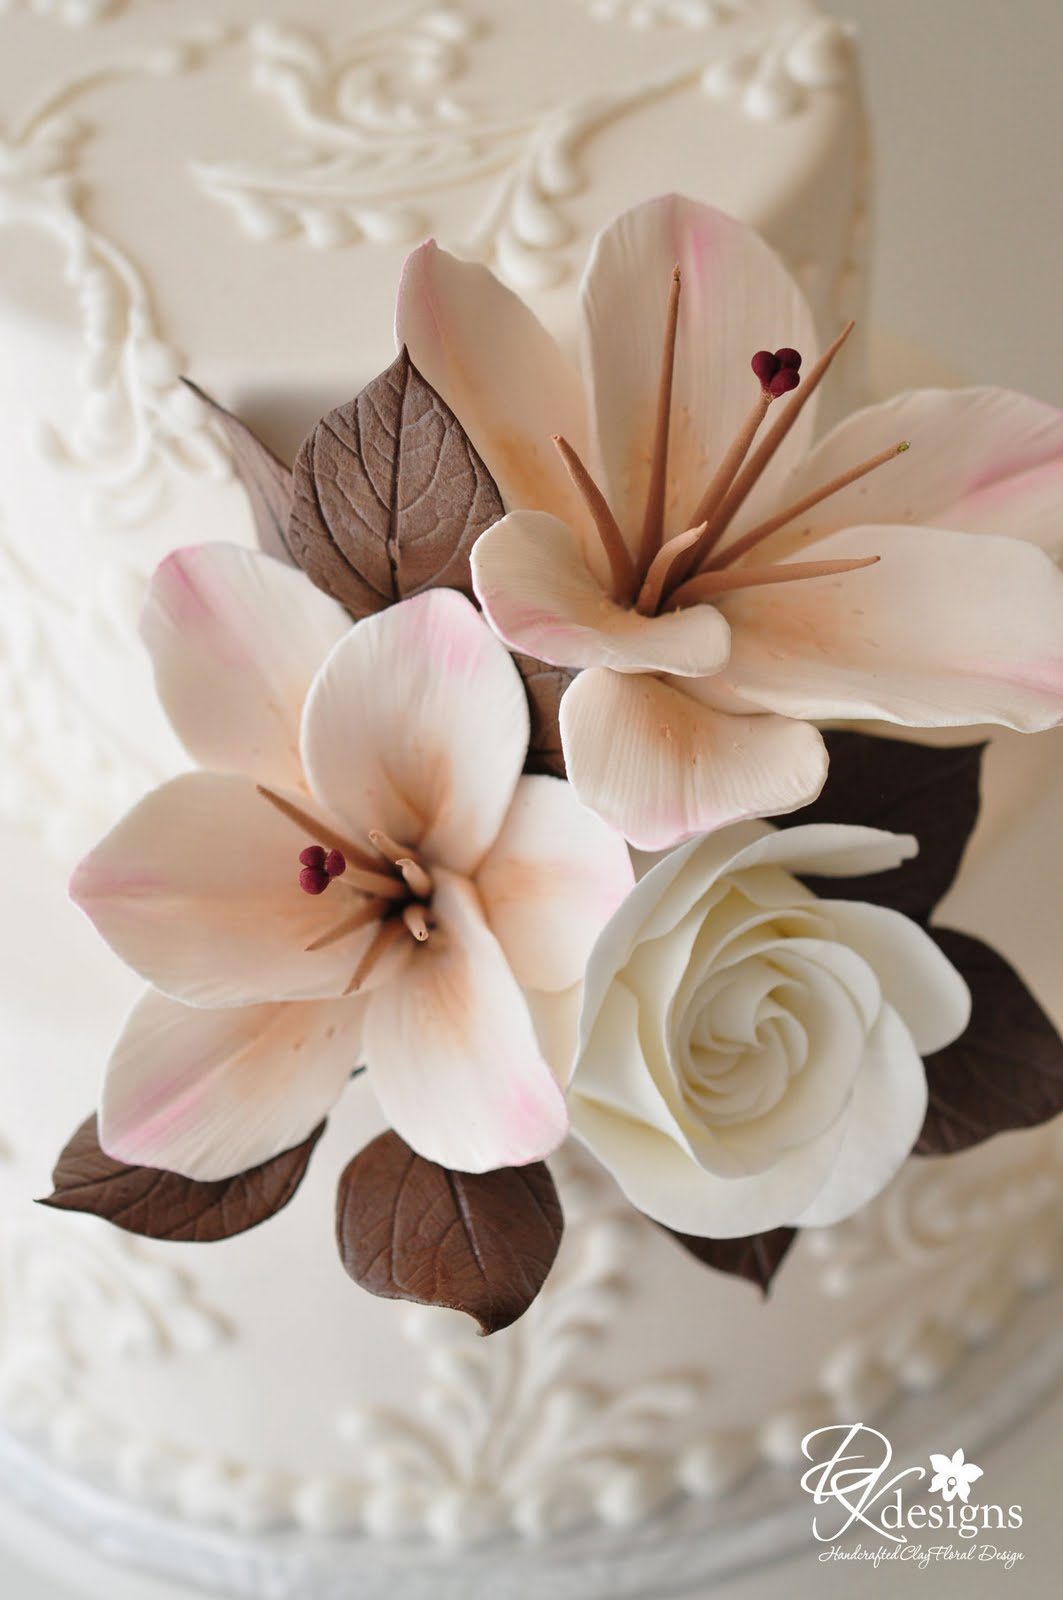 Brown And Pink Living Room Decor: DK Designs: Ivory, Chocolate Brown And Pink Cake Flowers